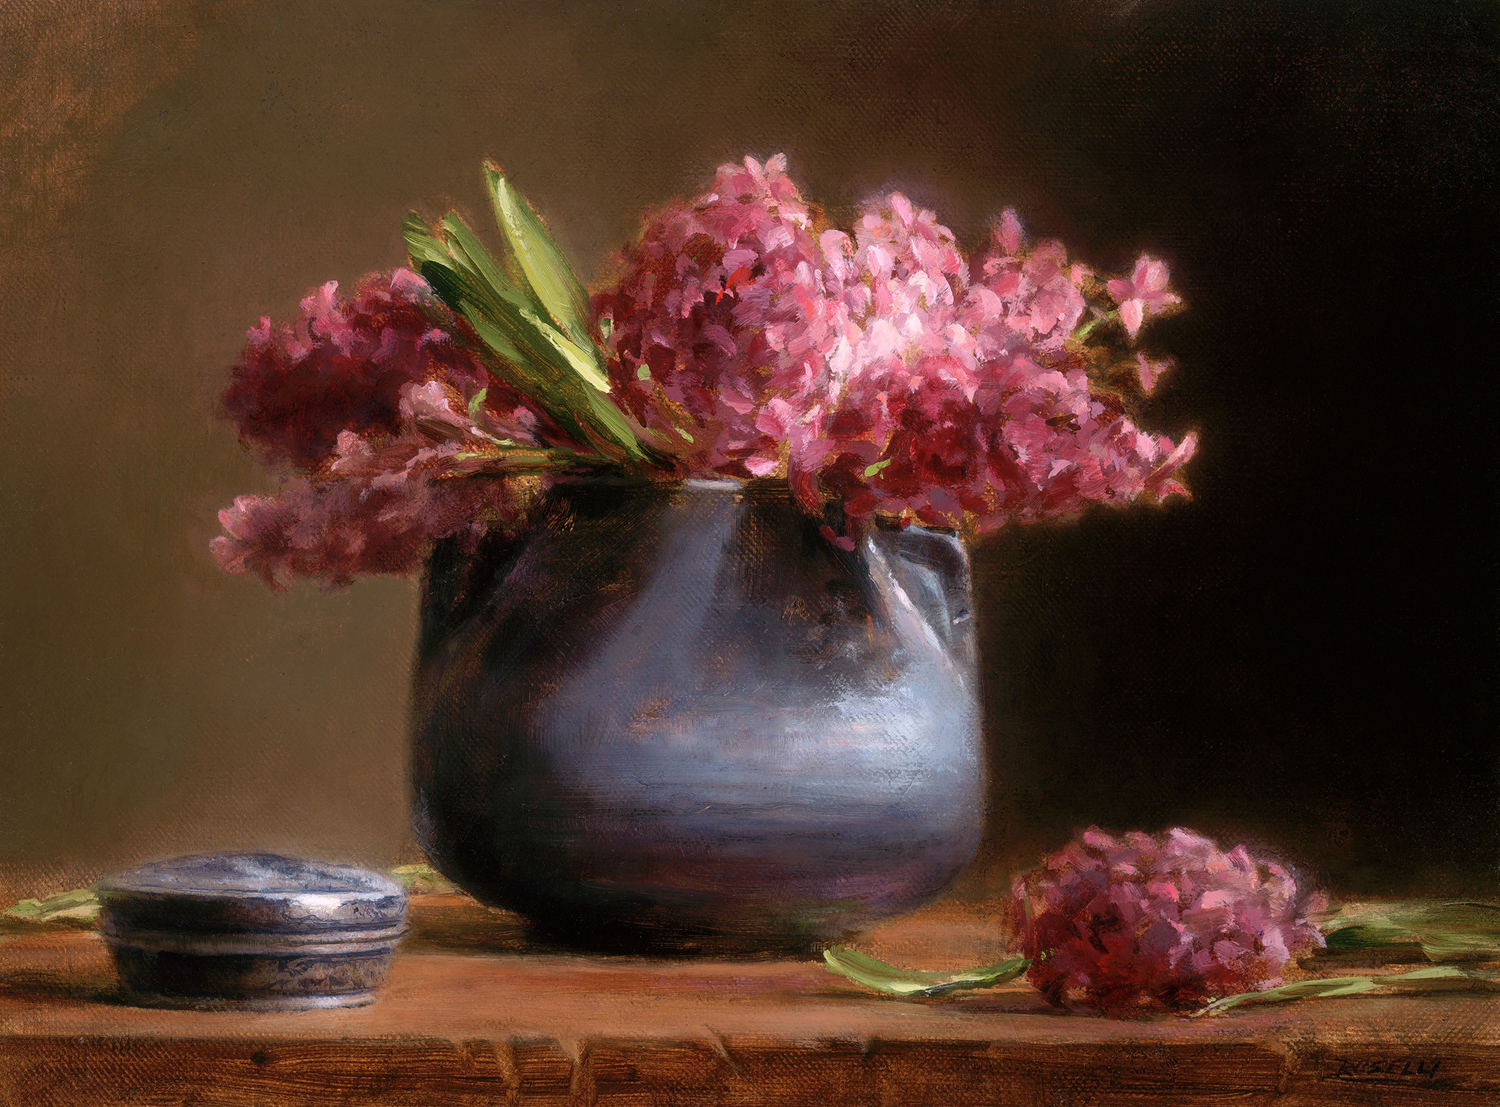 "THE McCOY POT WITH HYACINTH    AMERICAN ARTIST MAGAZINE FIRST PRIZE - 70TH ANNIVERSARY   oil on linen           12"" x 16"""